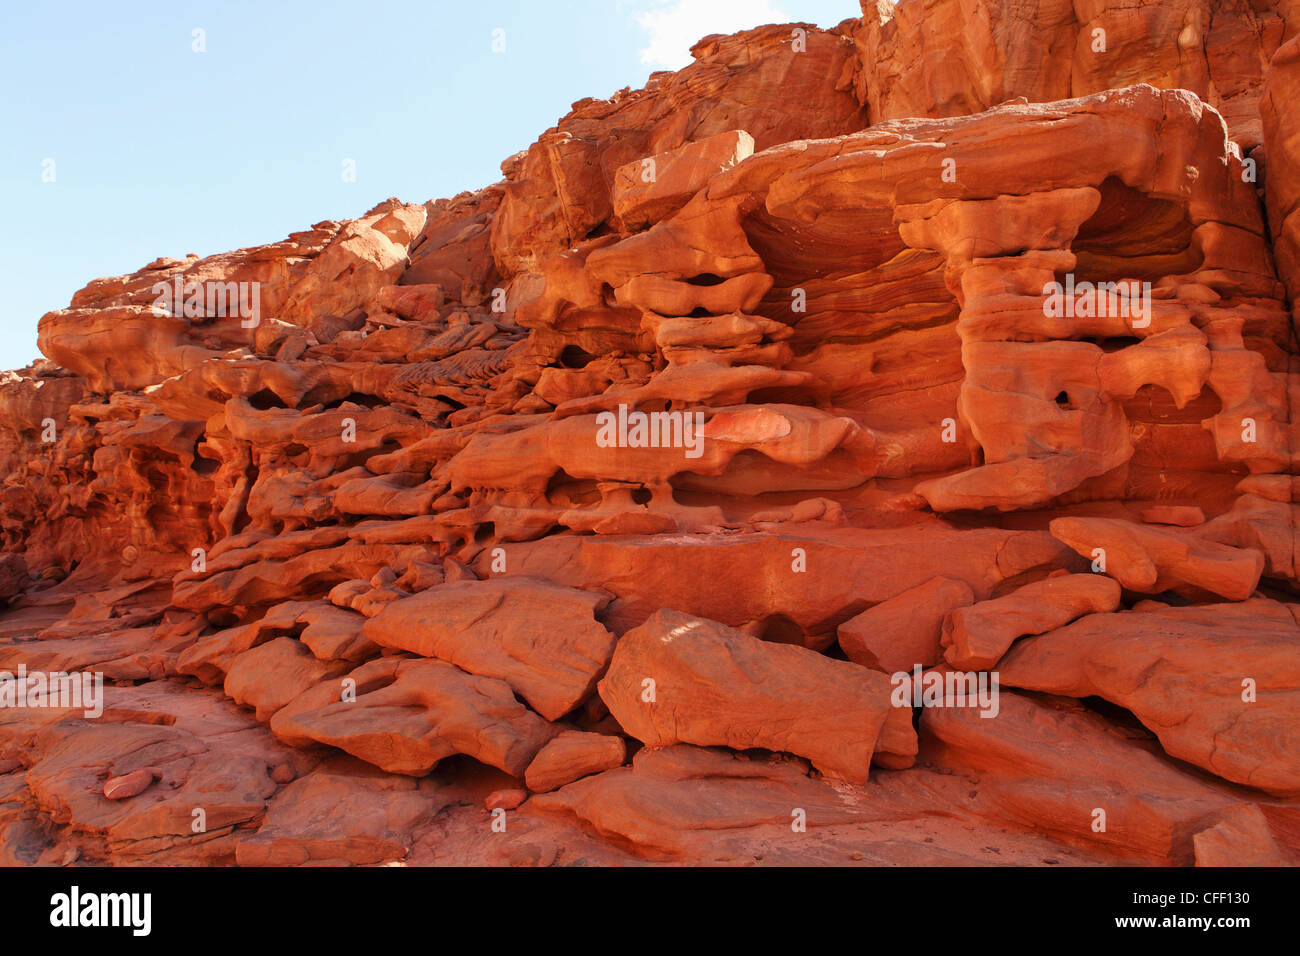 Erosion helps form stunning formations in the rocks of the Coloured Canyon, Sinai South, Egypt, North Africa, Africa - Stock Image